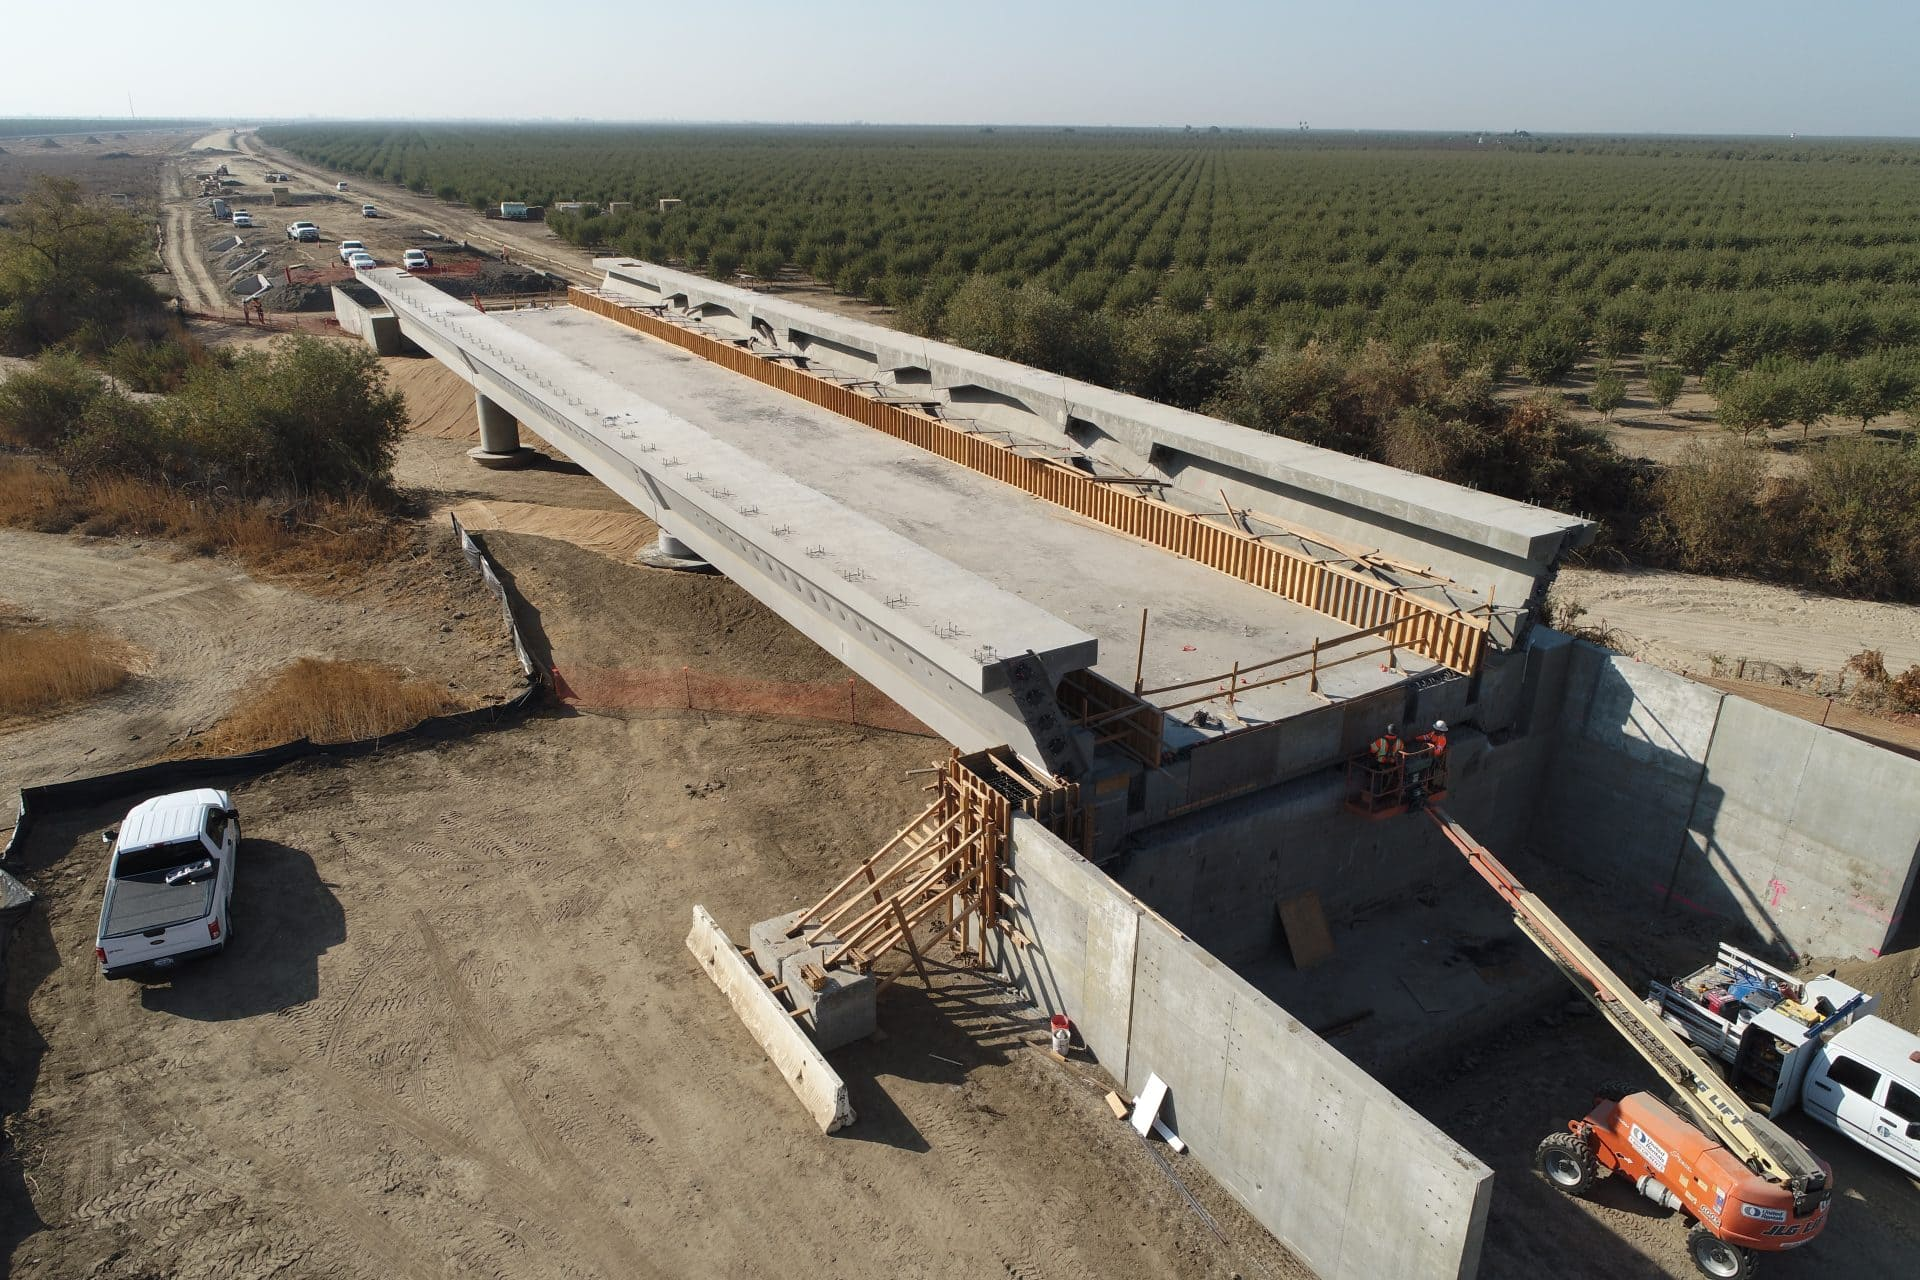 Viaduct Poso Creek Record Time Completion California High Speed Rail